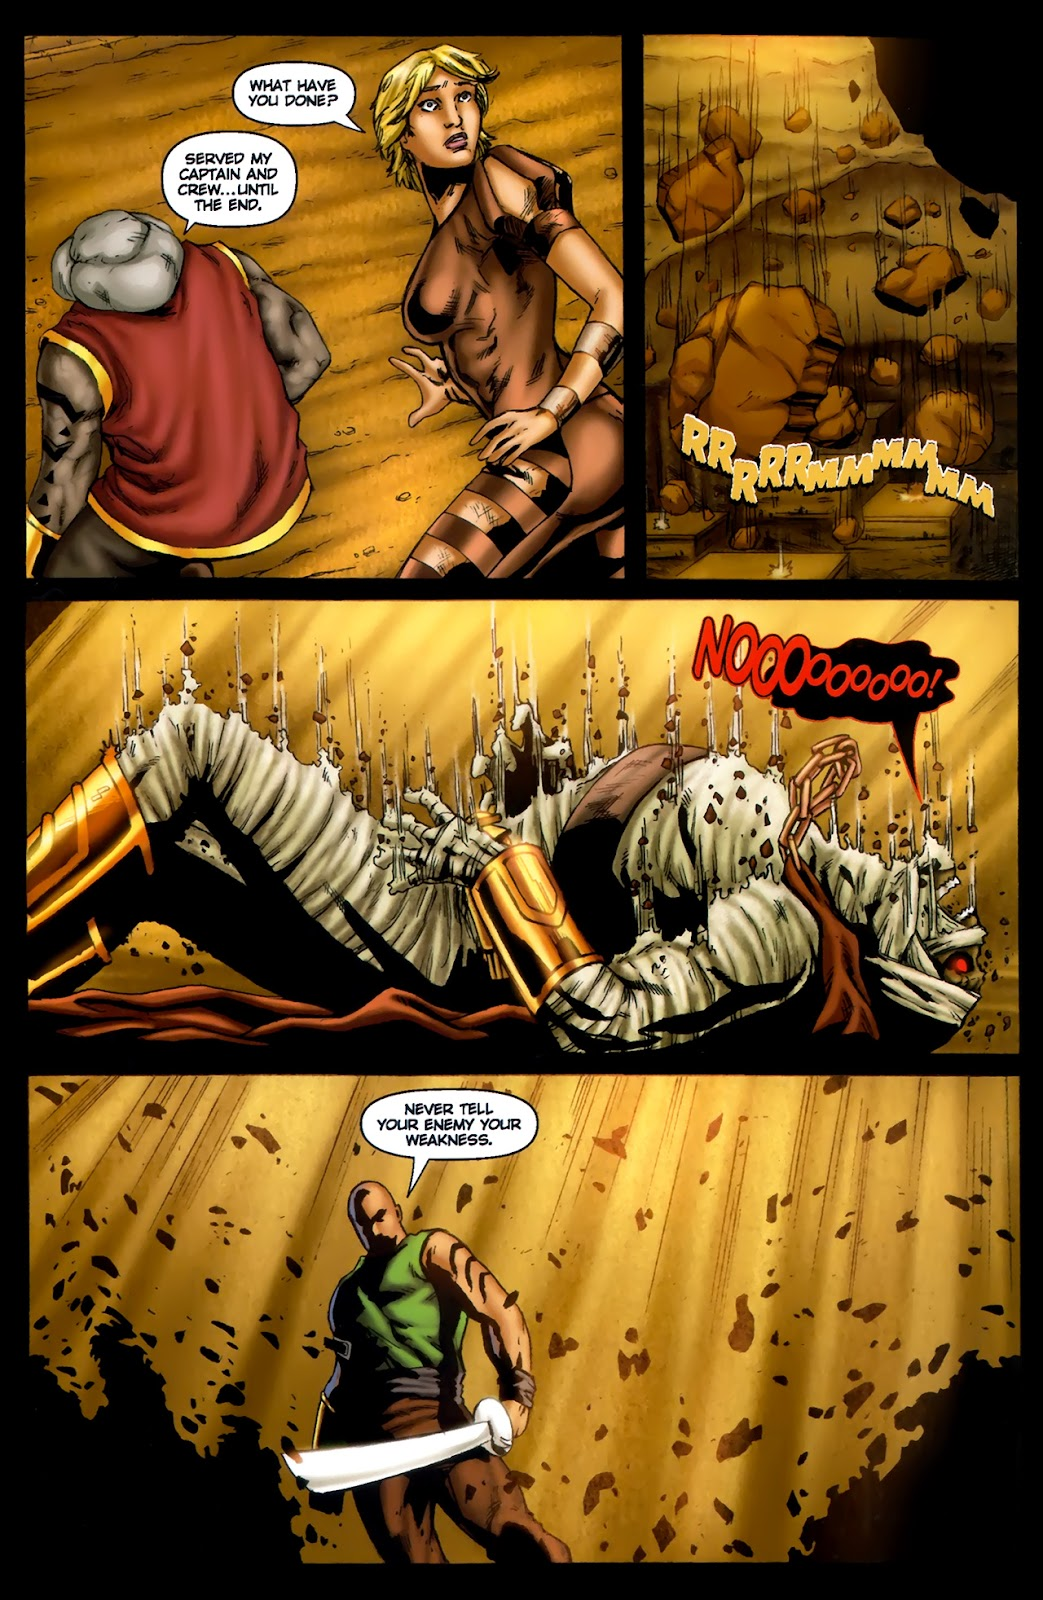 1001 Arabian Nights: The Adventures of Sinbad Issue #13 Page 19